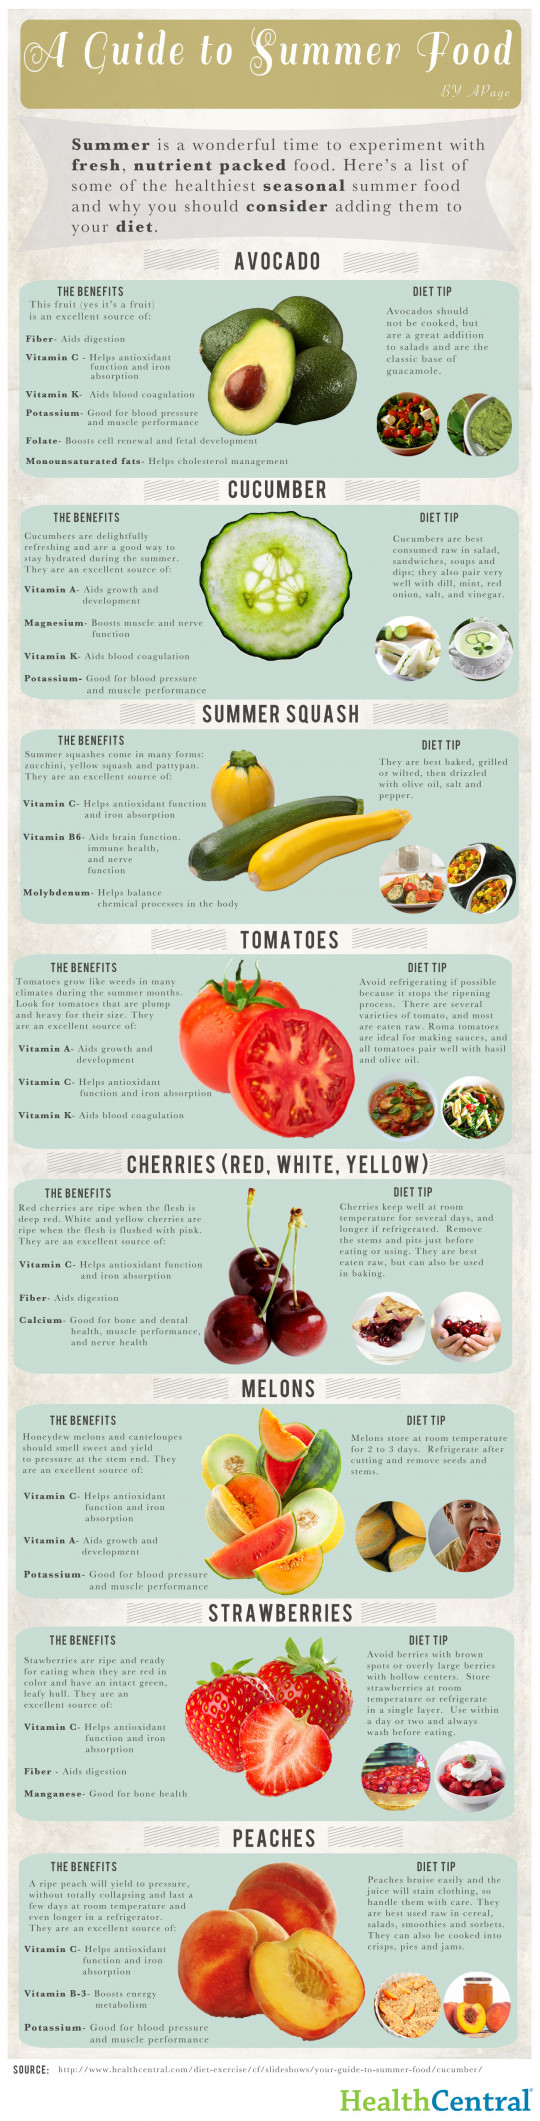 A Guide to Summer Food